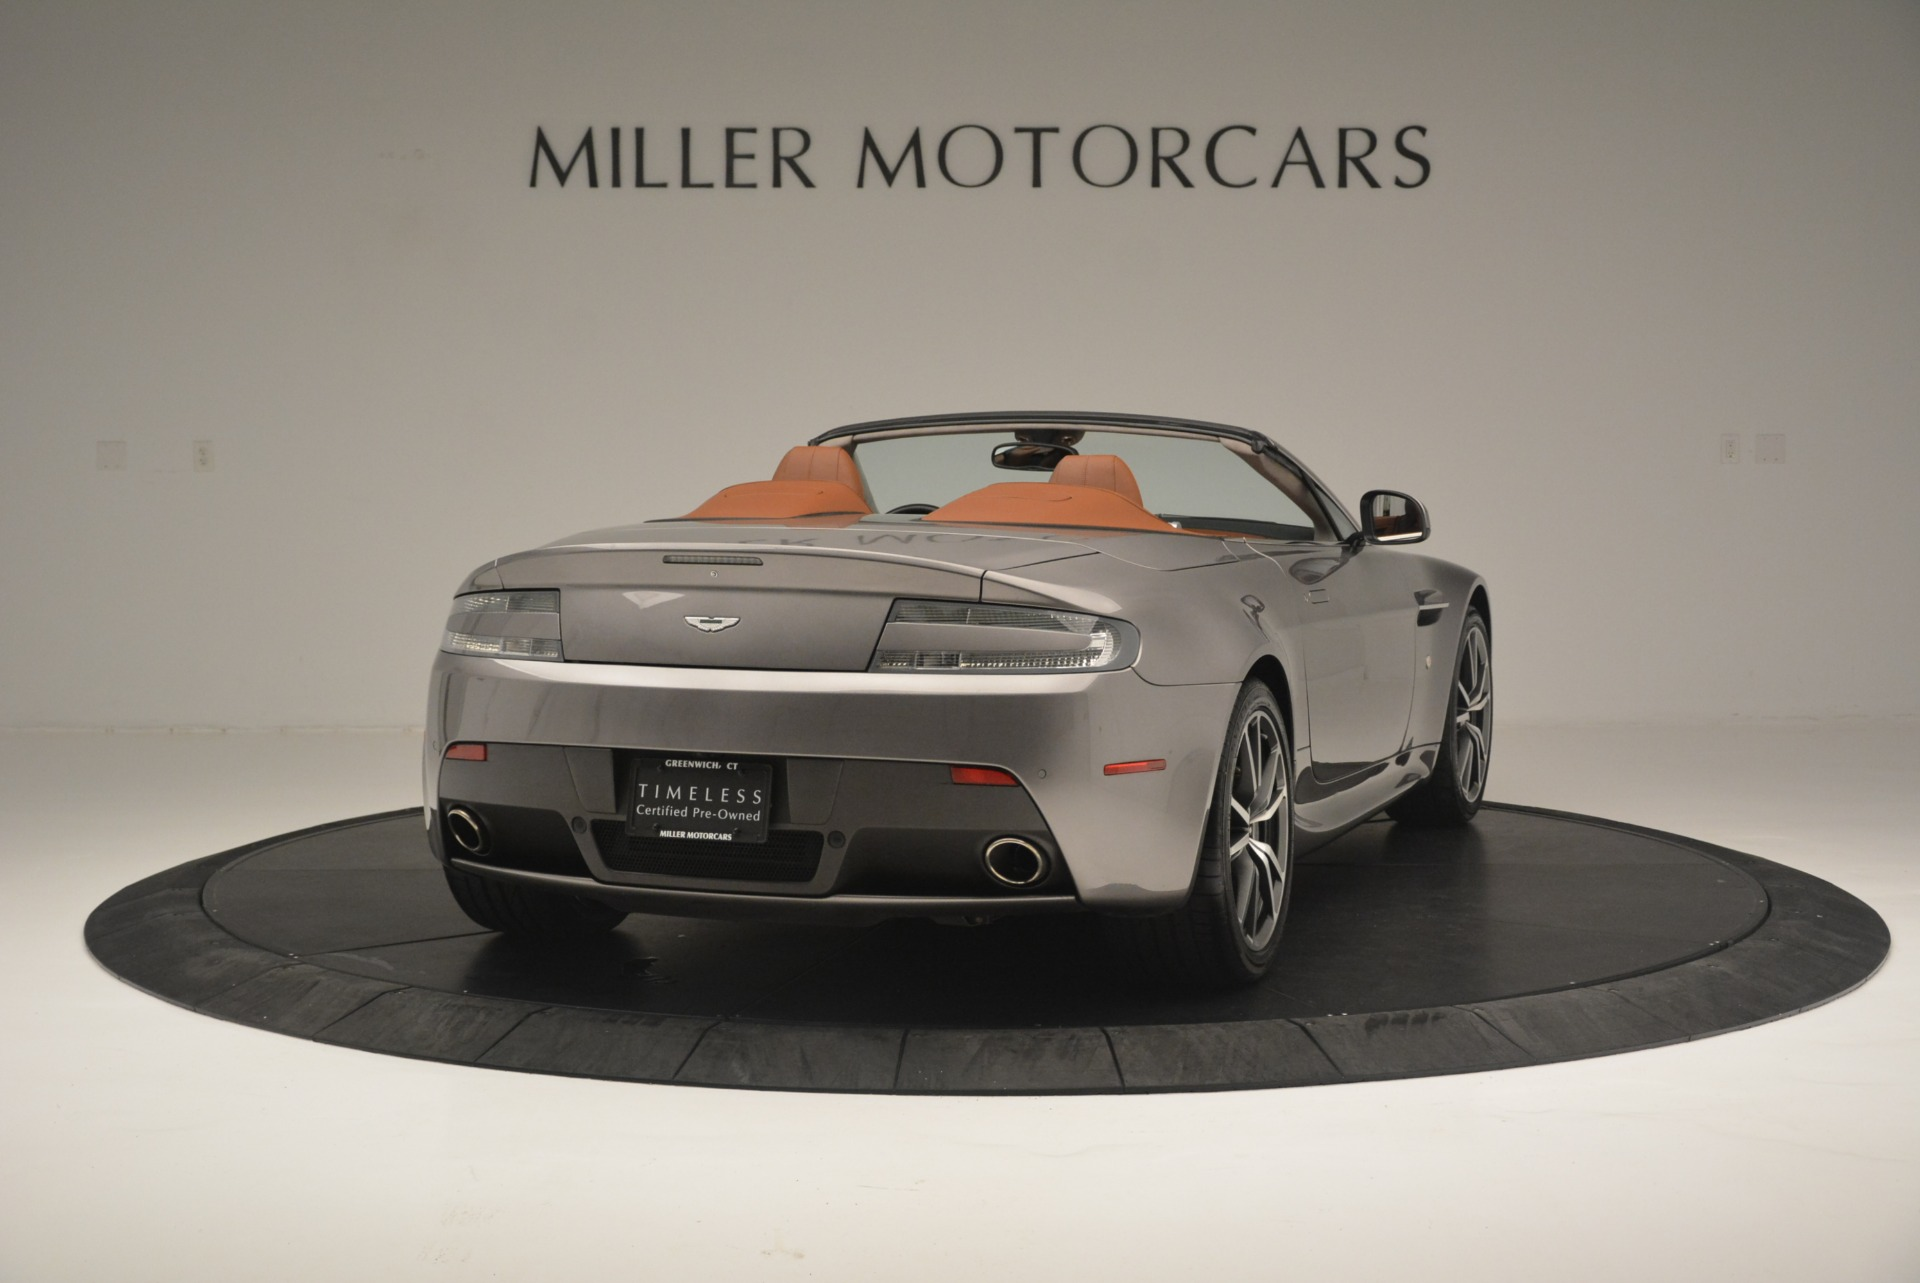 Used 2015 Aston Martin V8 Vantage Roadster For Sale In Greenwich, CT 2463_p7